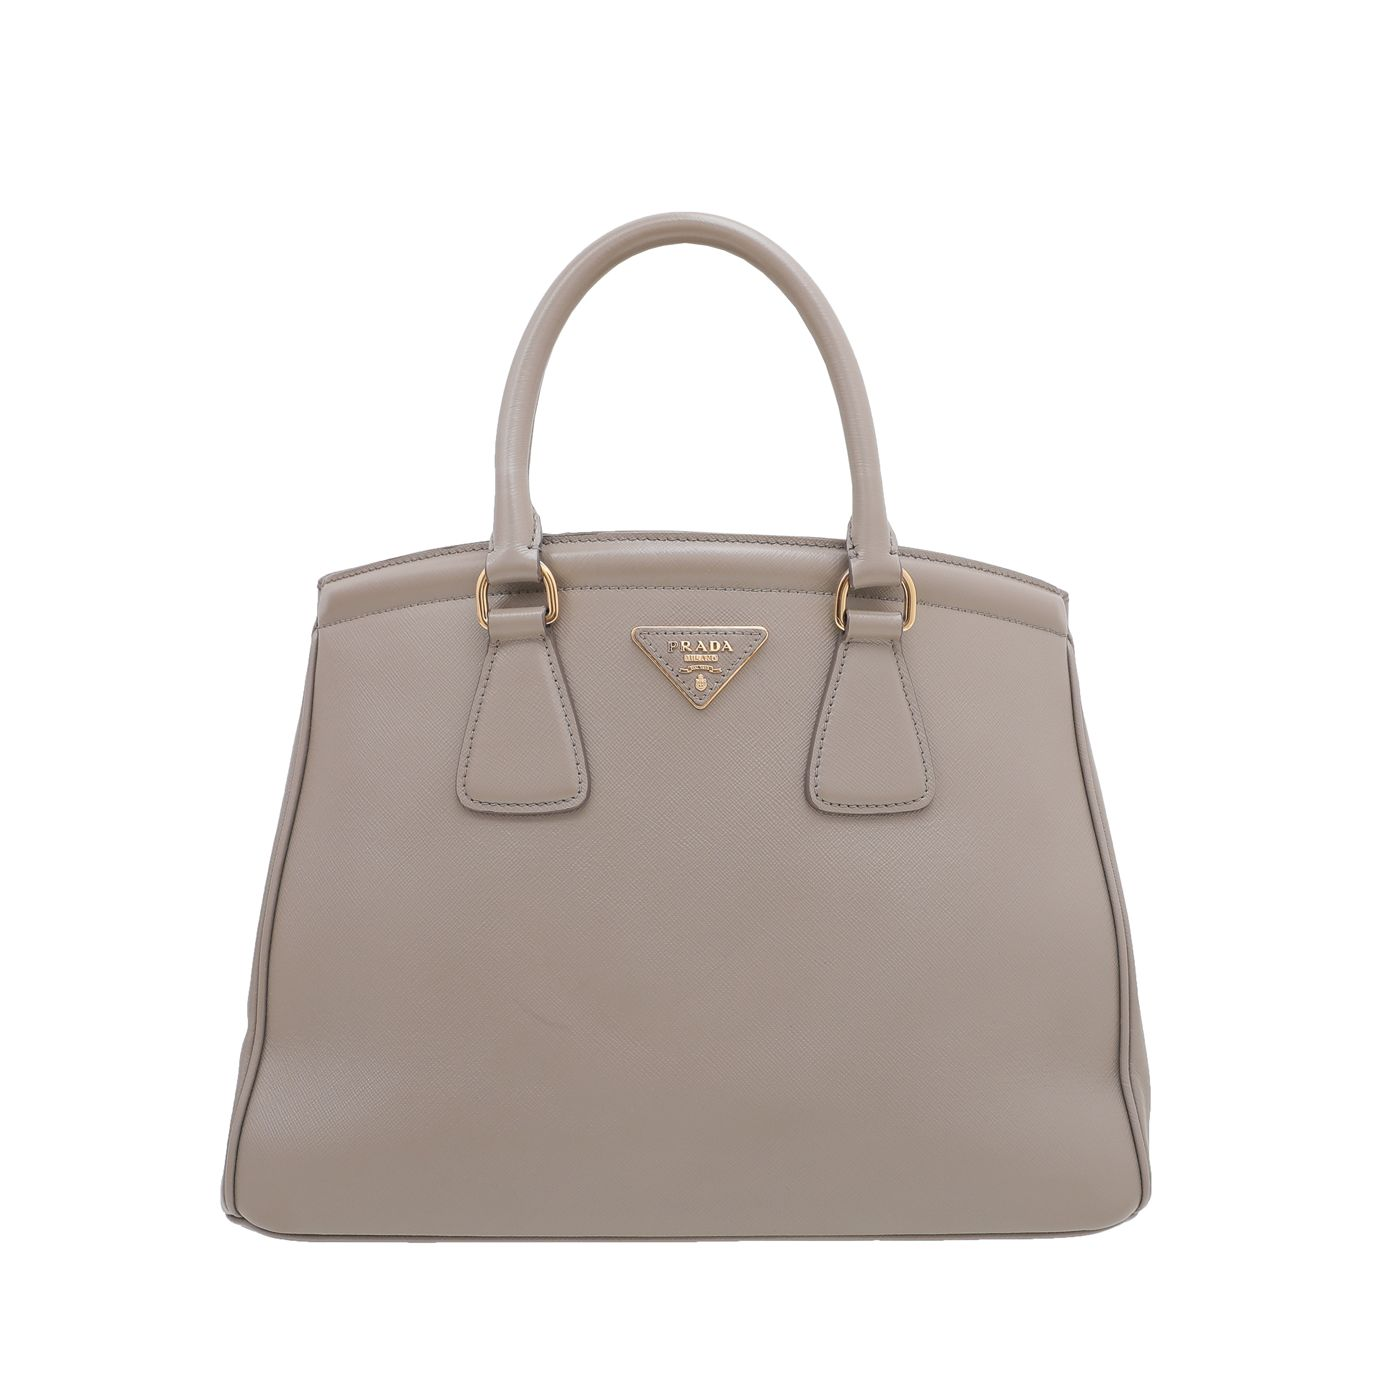 Prada Grey Parabole Medium Tote Bag